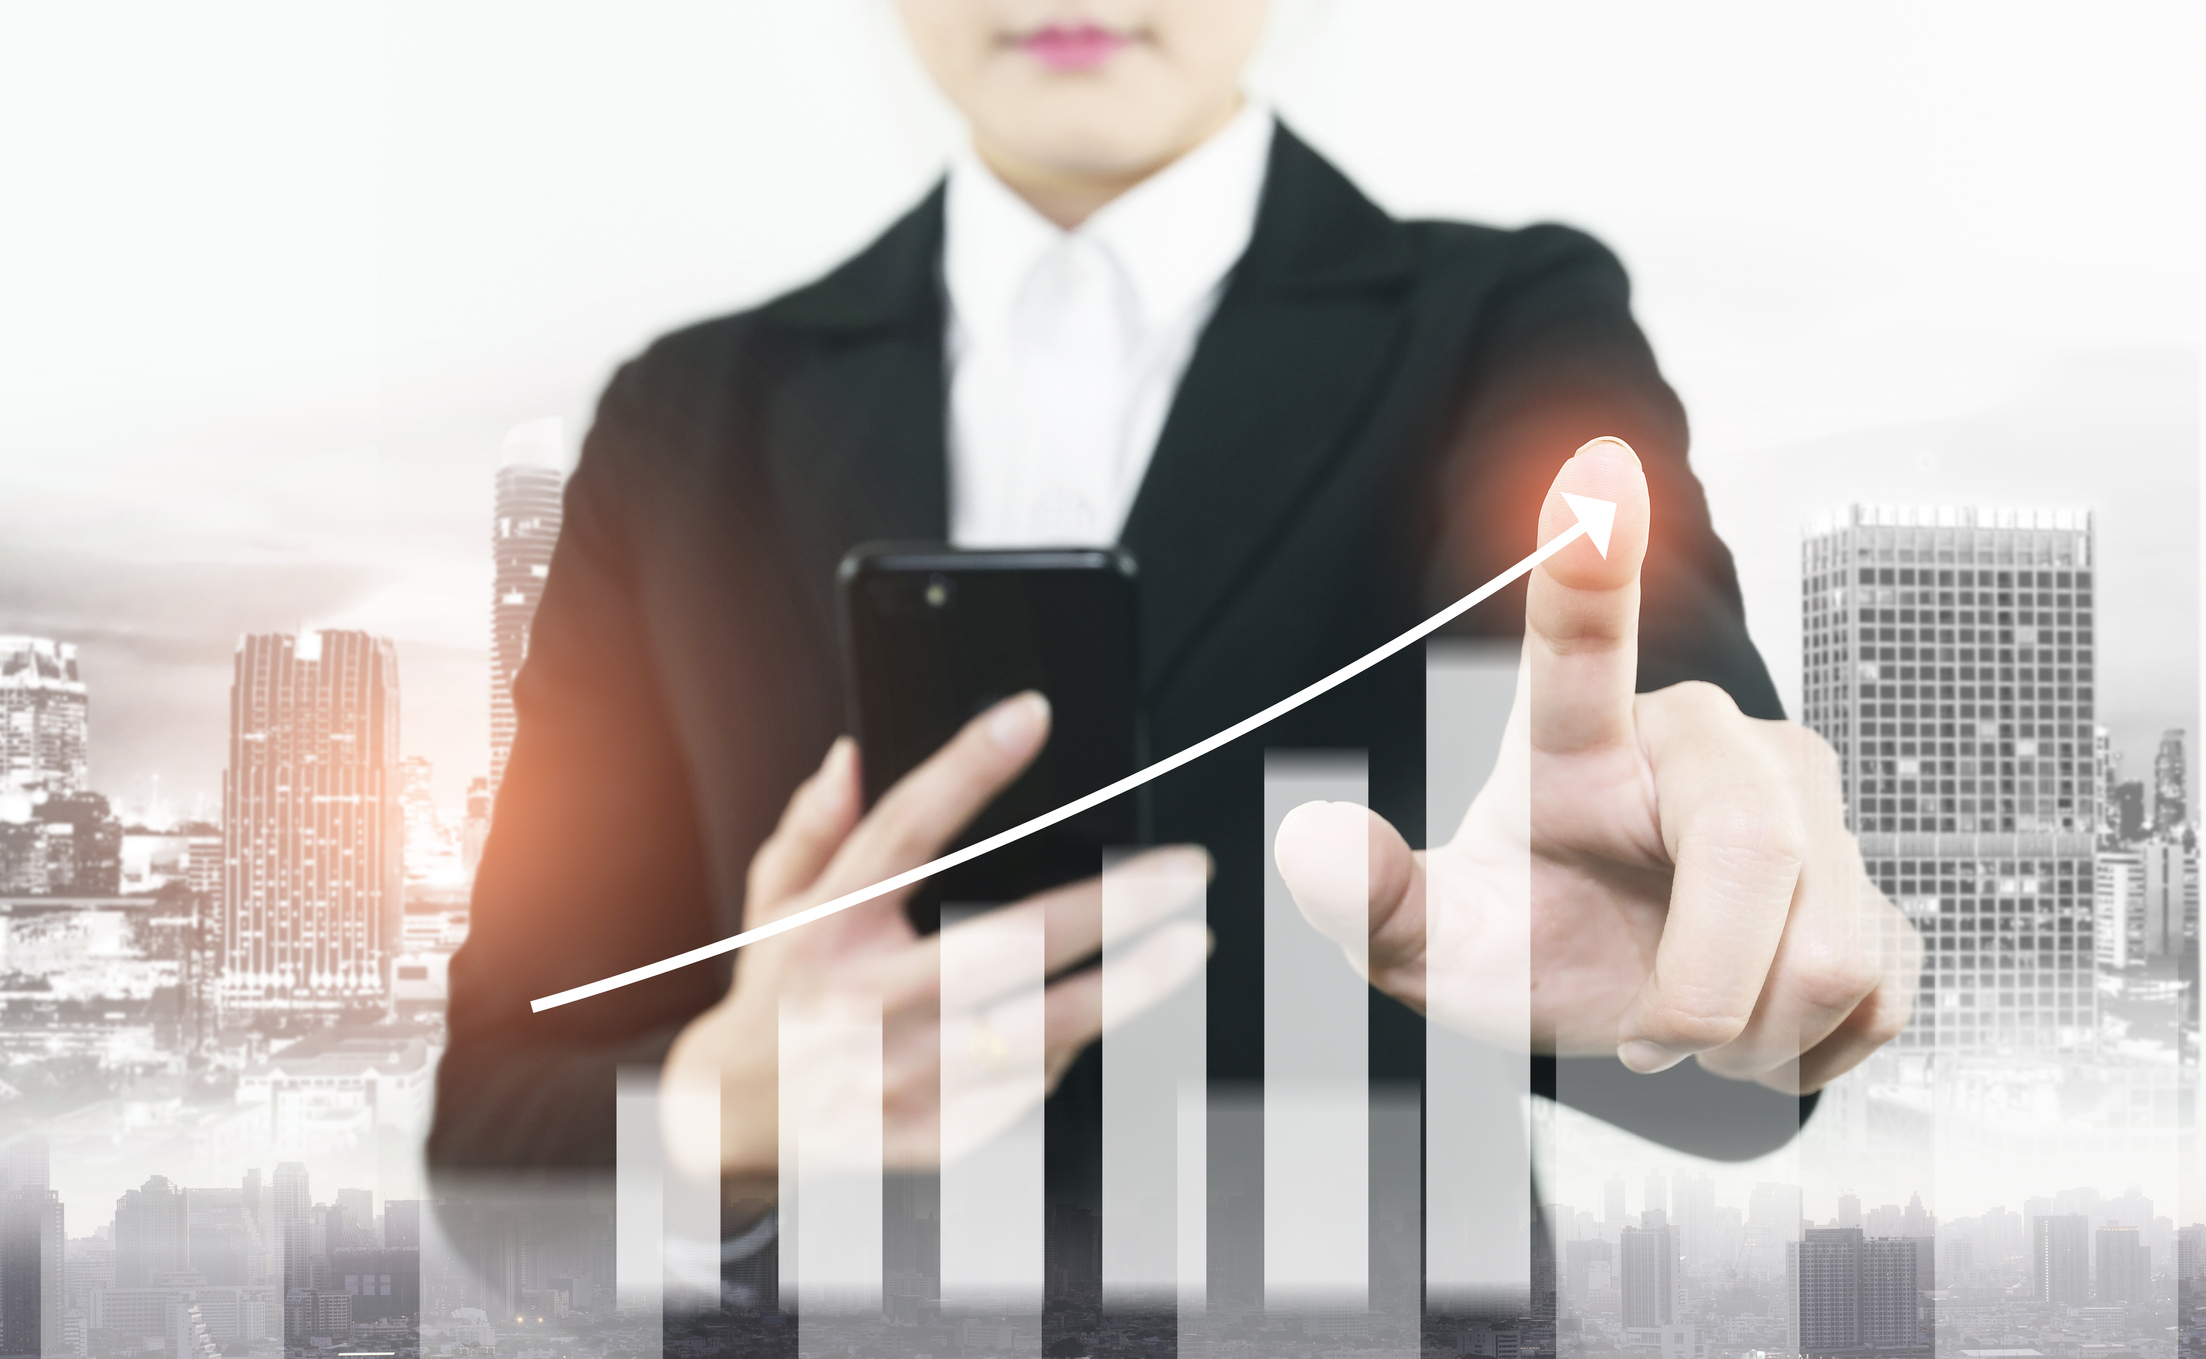 nfo-graphic of business growth double exposure of woman is checking to smart phone to command business stock graph increasing.